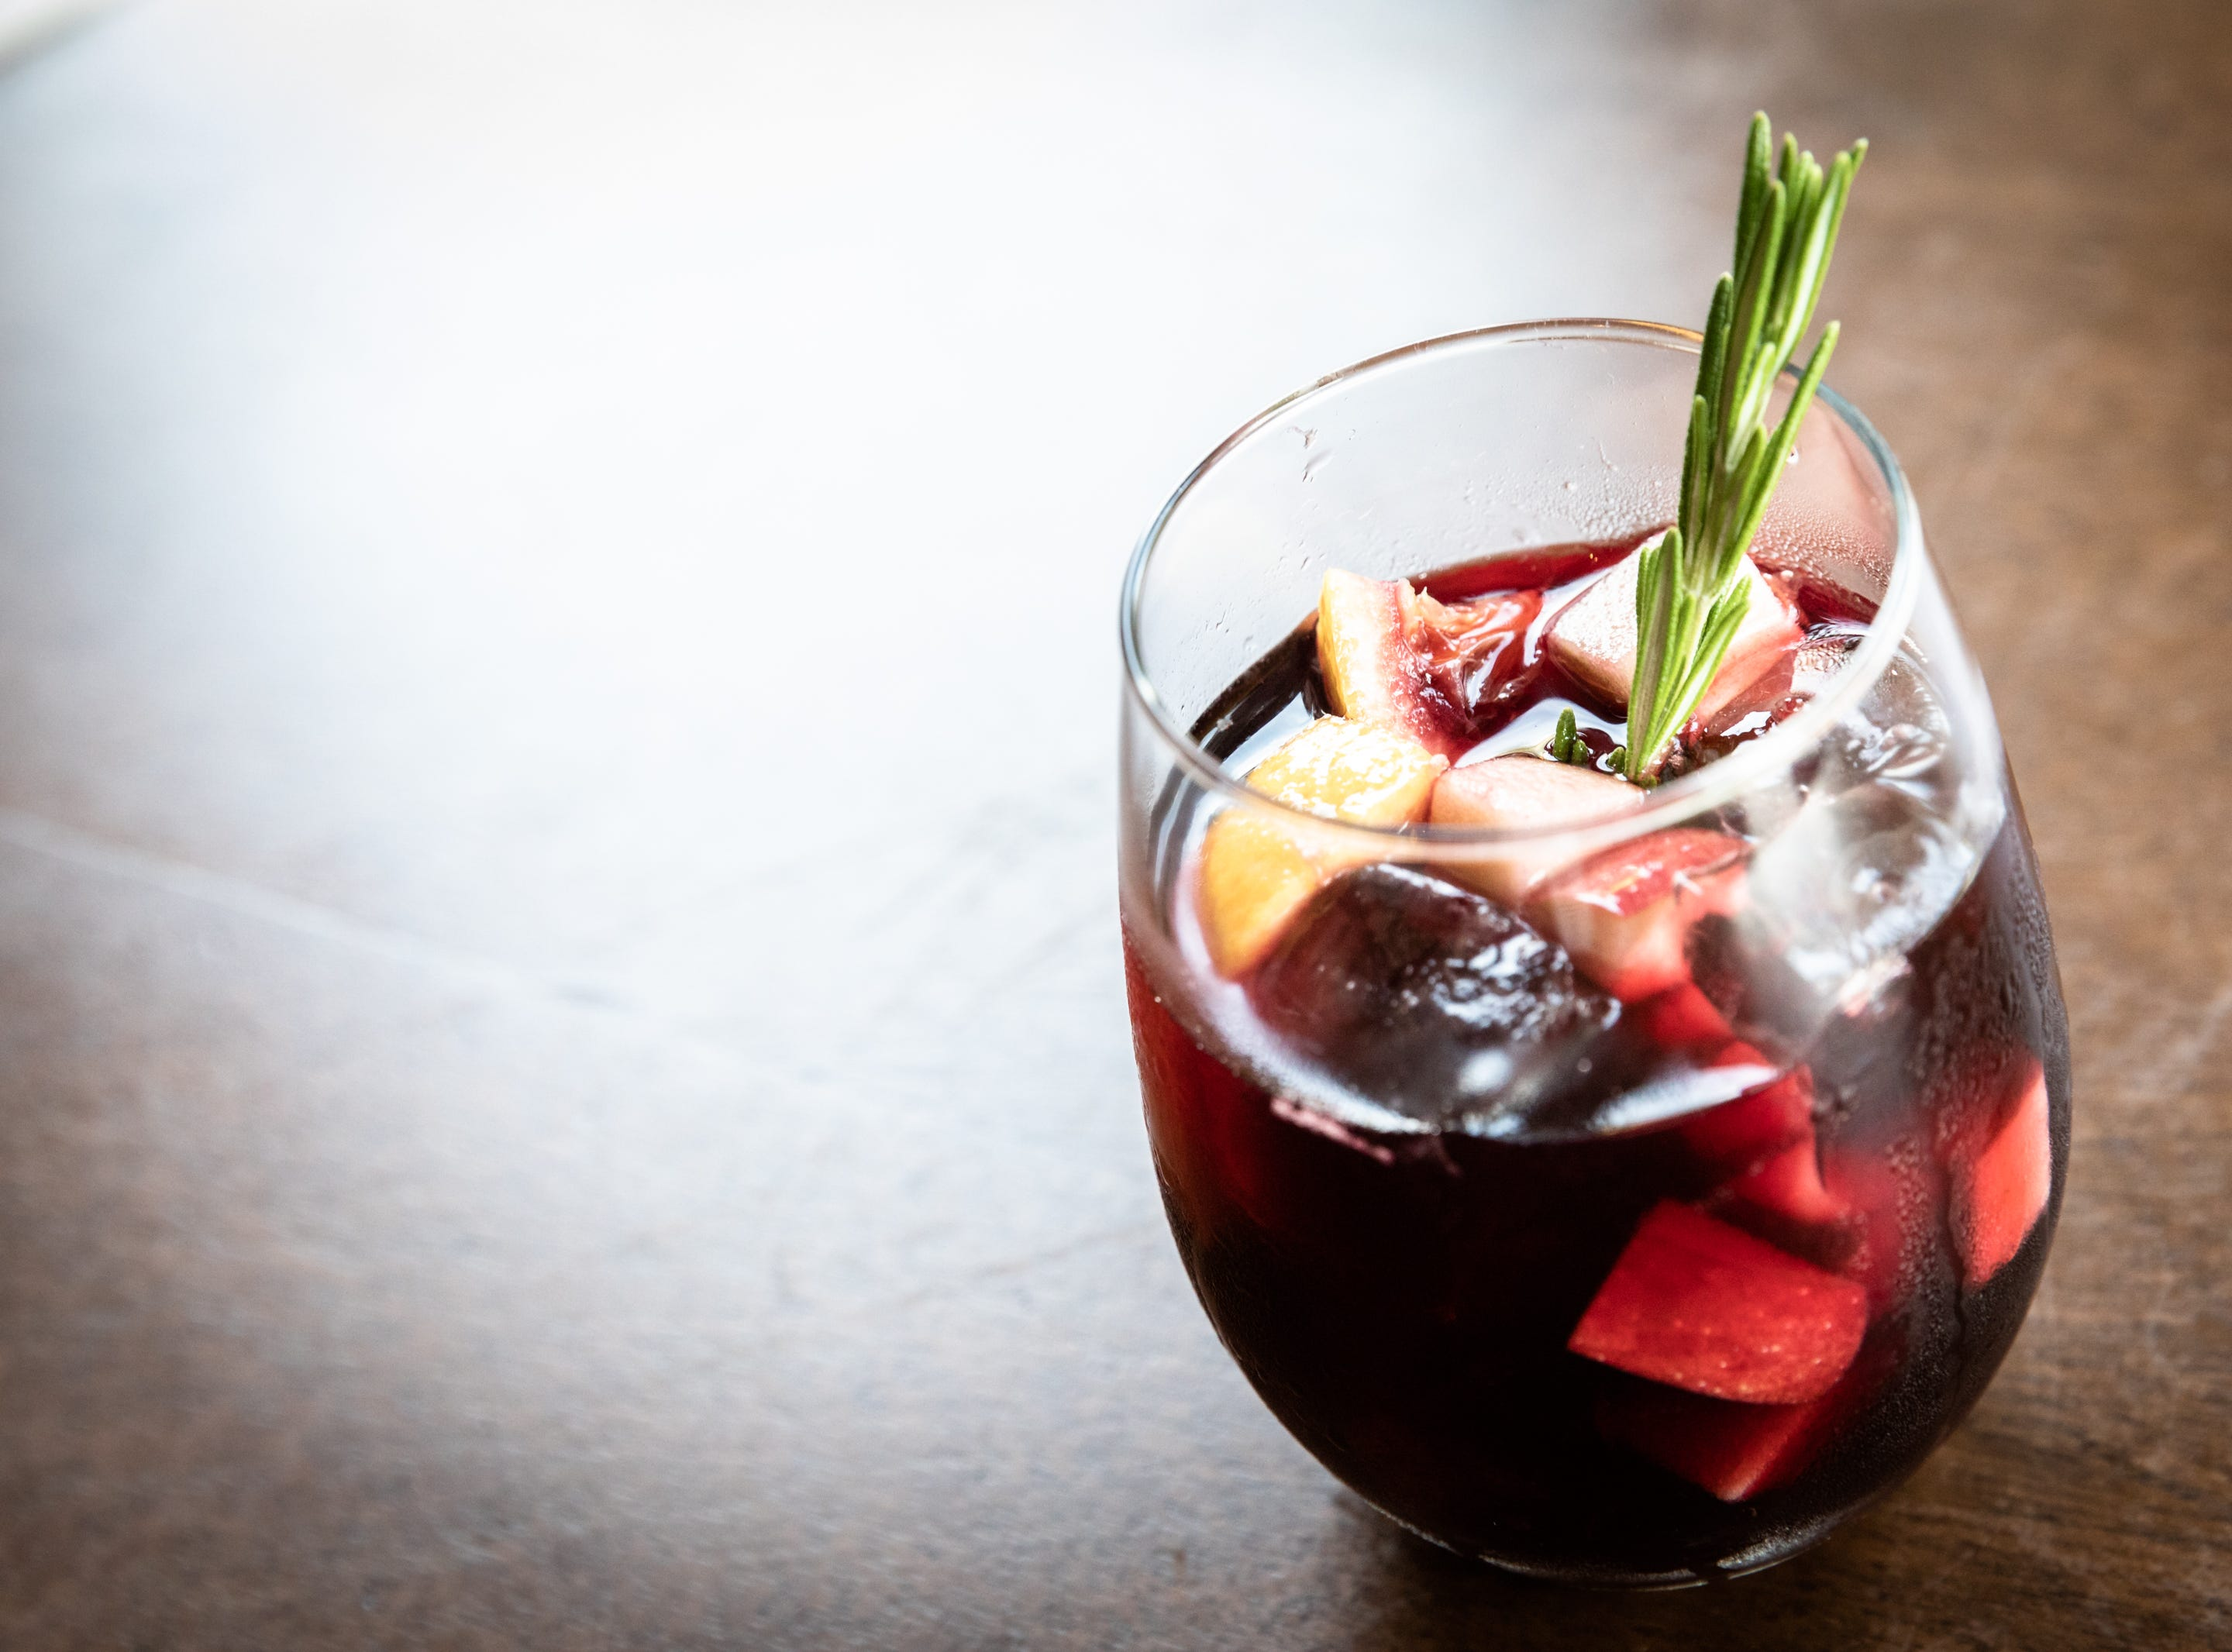 The Winter Sangria with red wine, Goldschlager, orange and apple, offered at Bone and Broth restaurant on Charlotte Street.